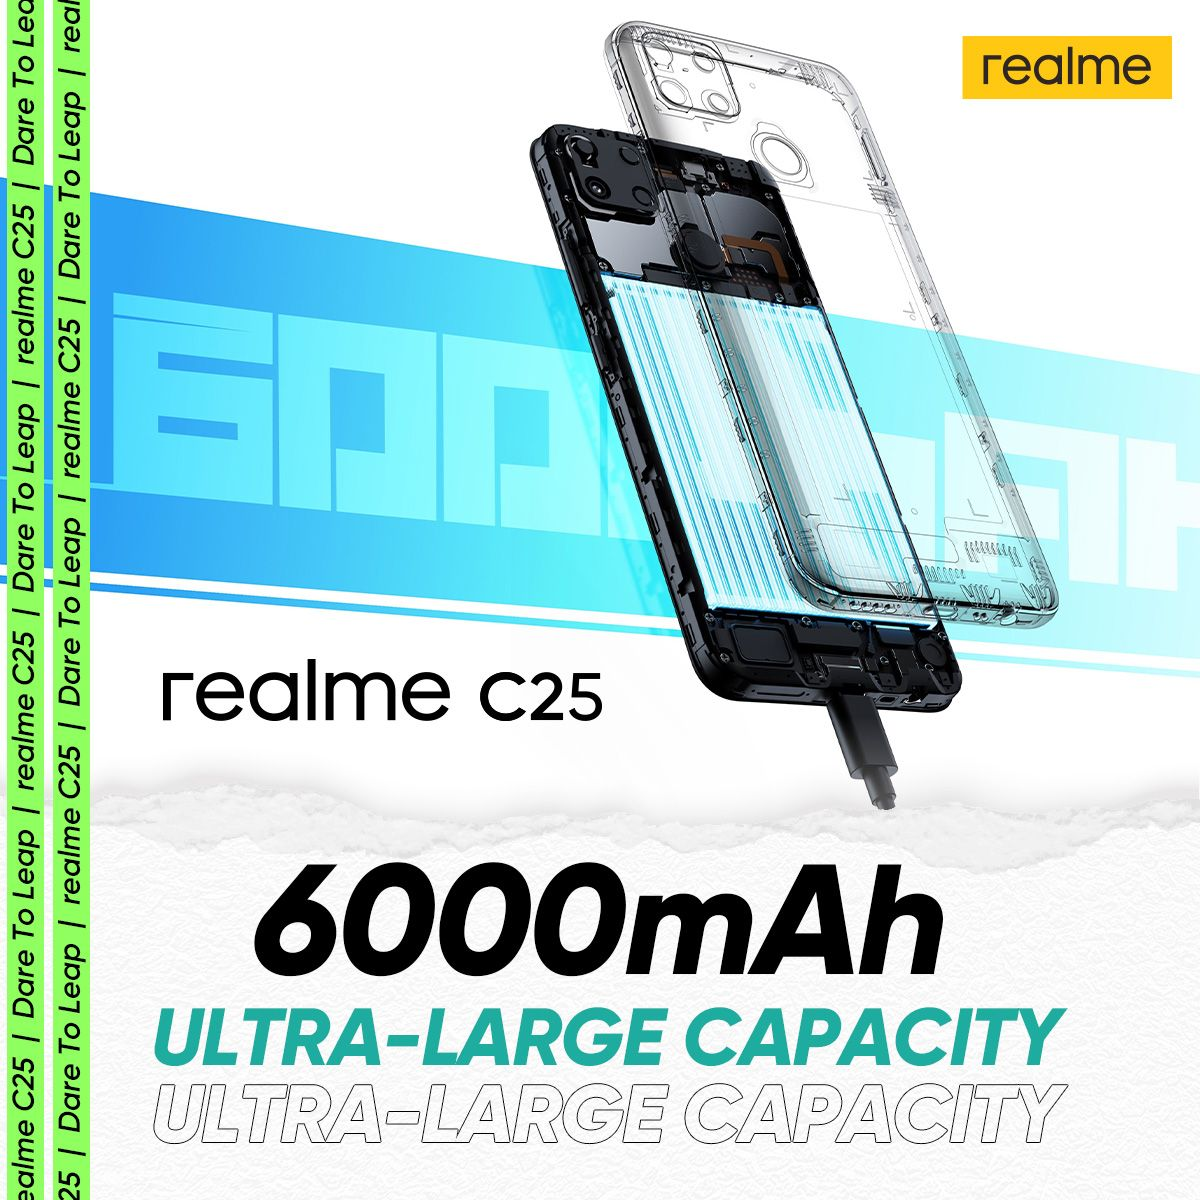 Stay connected all day with the new realme C25, power-packed 6,000mAh battery